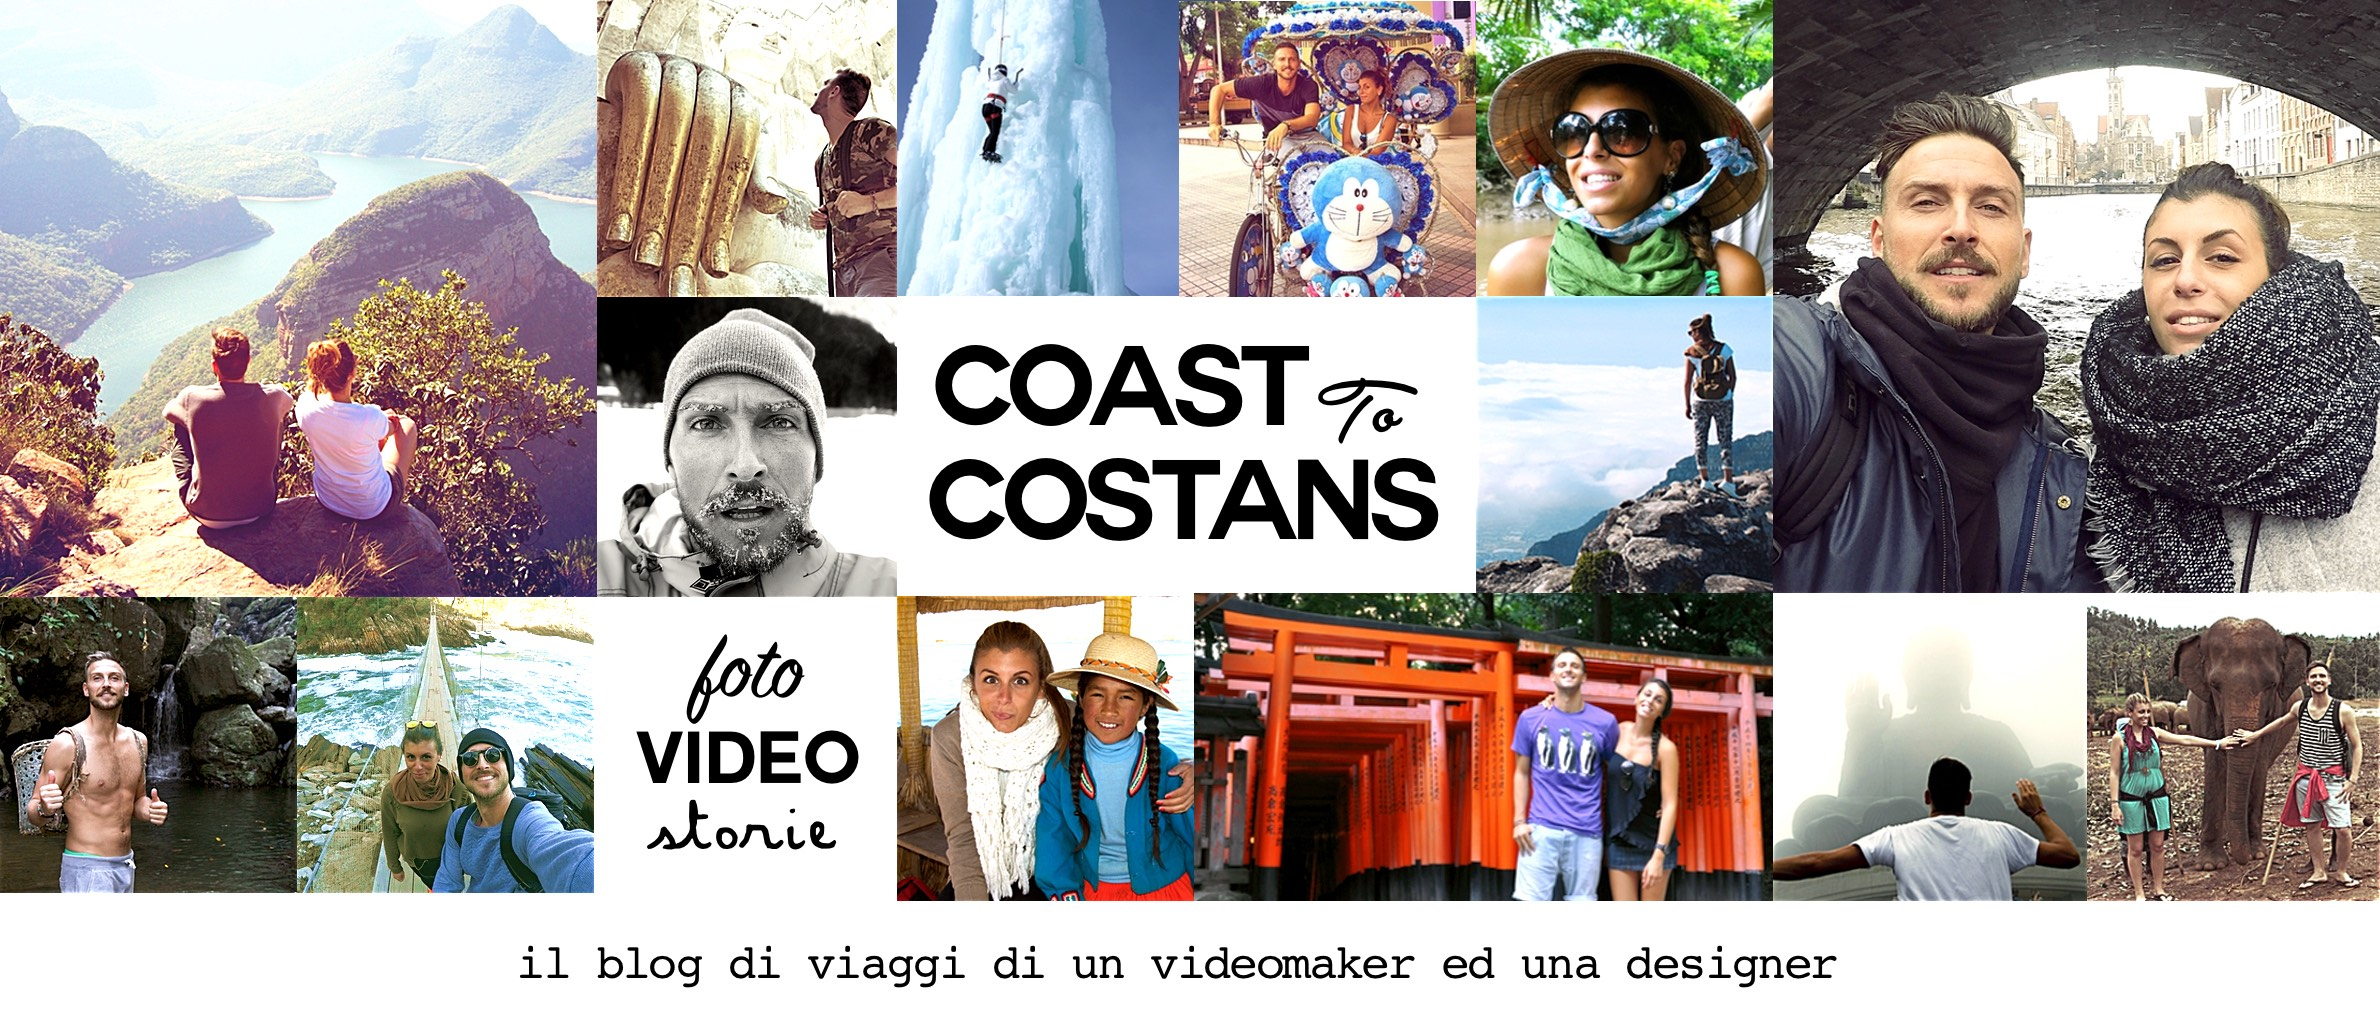 Coast to Costans